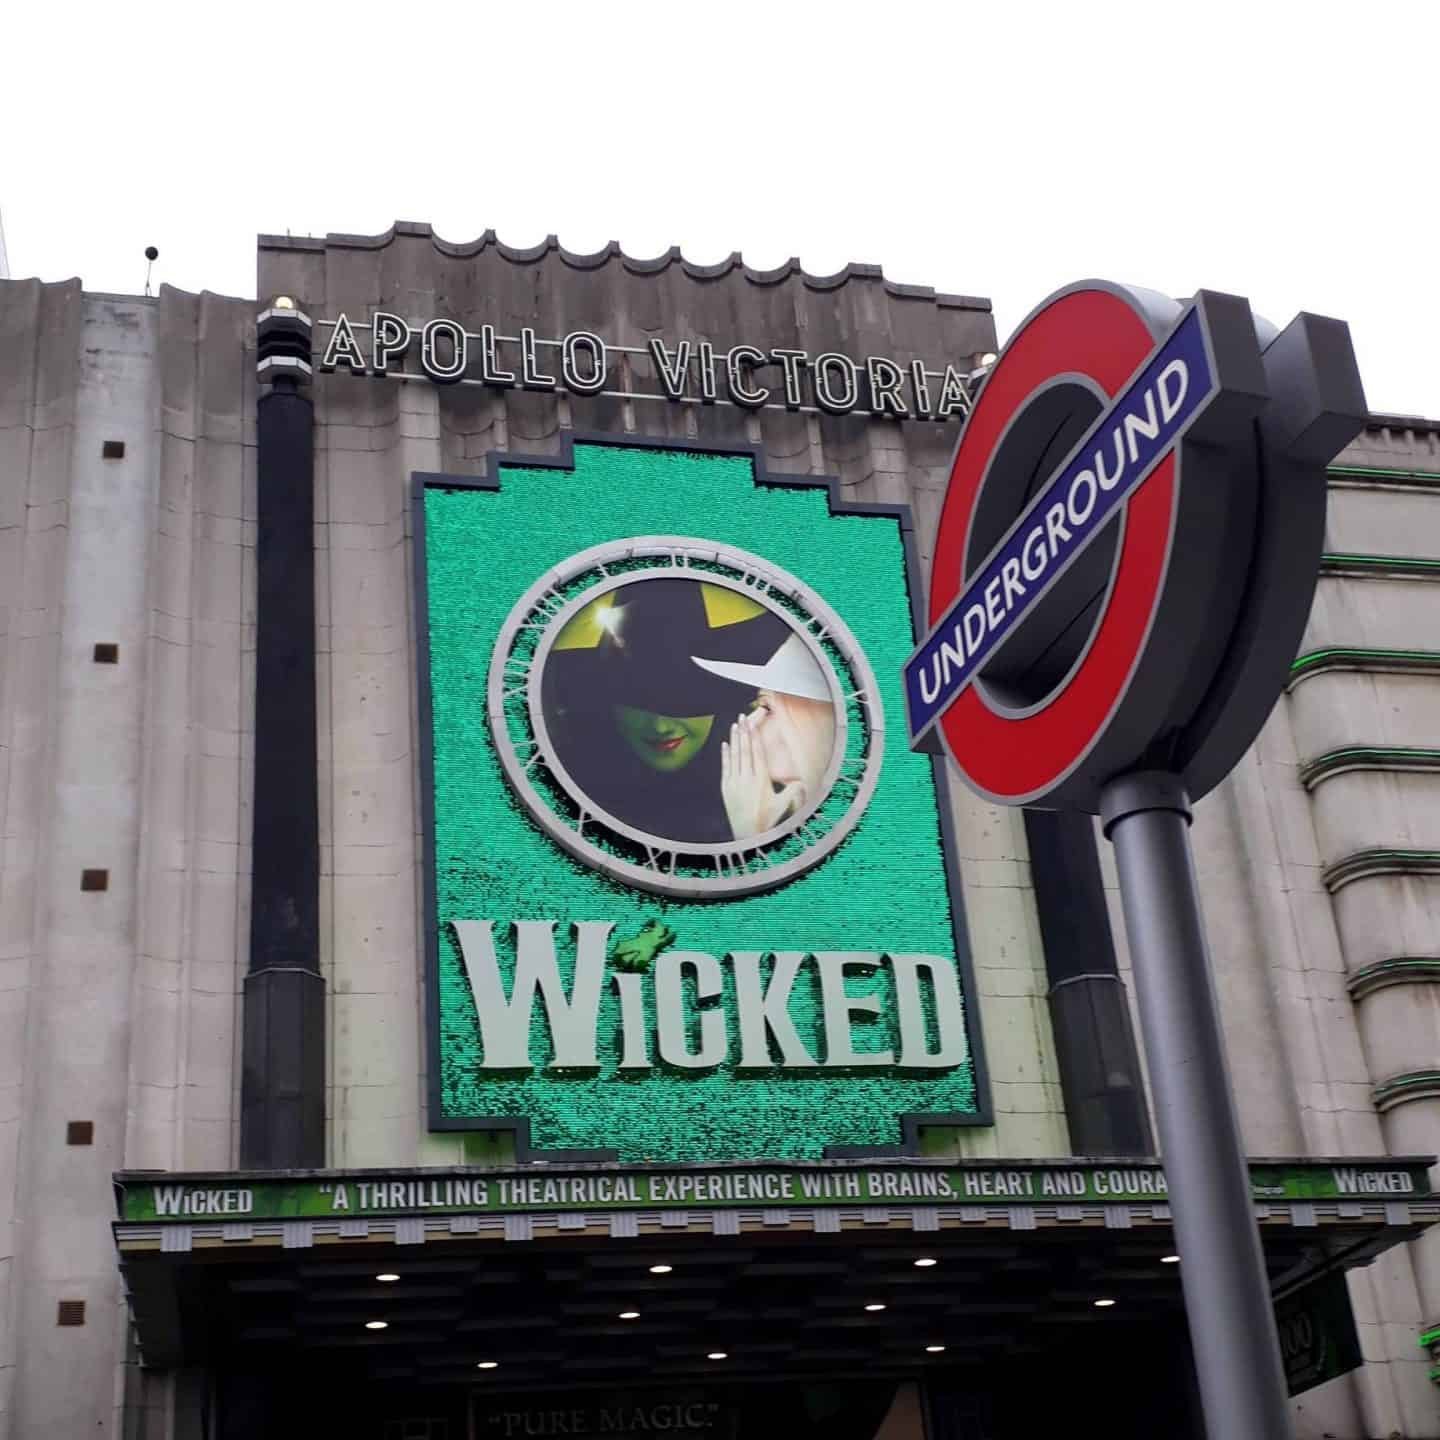 Picture of the theatre showing Wicked for my post on spending diaries